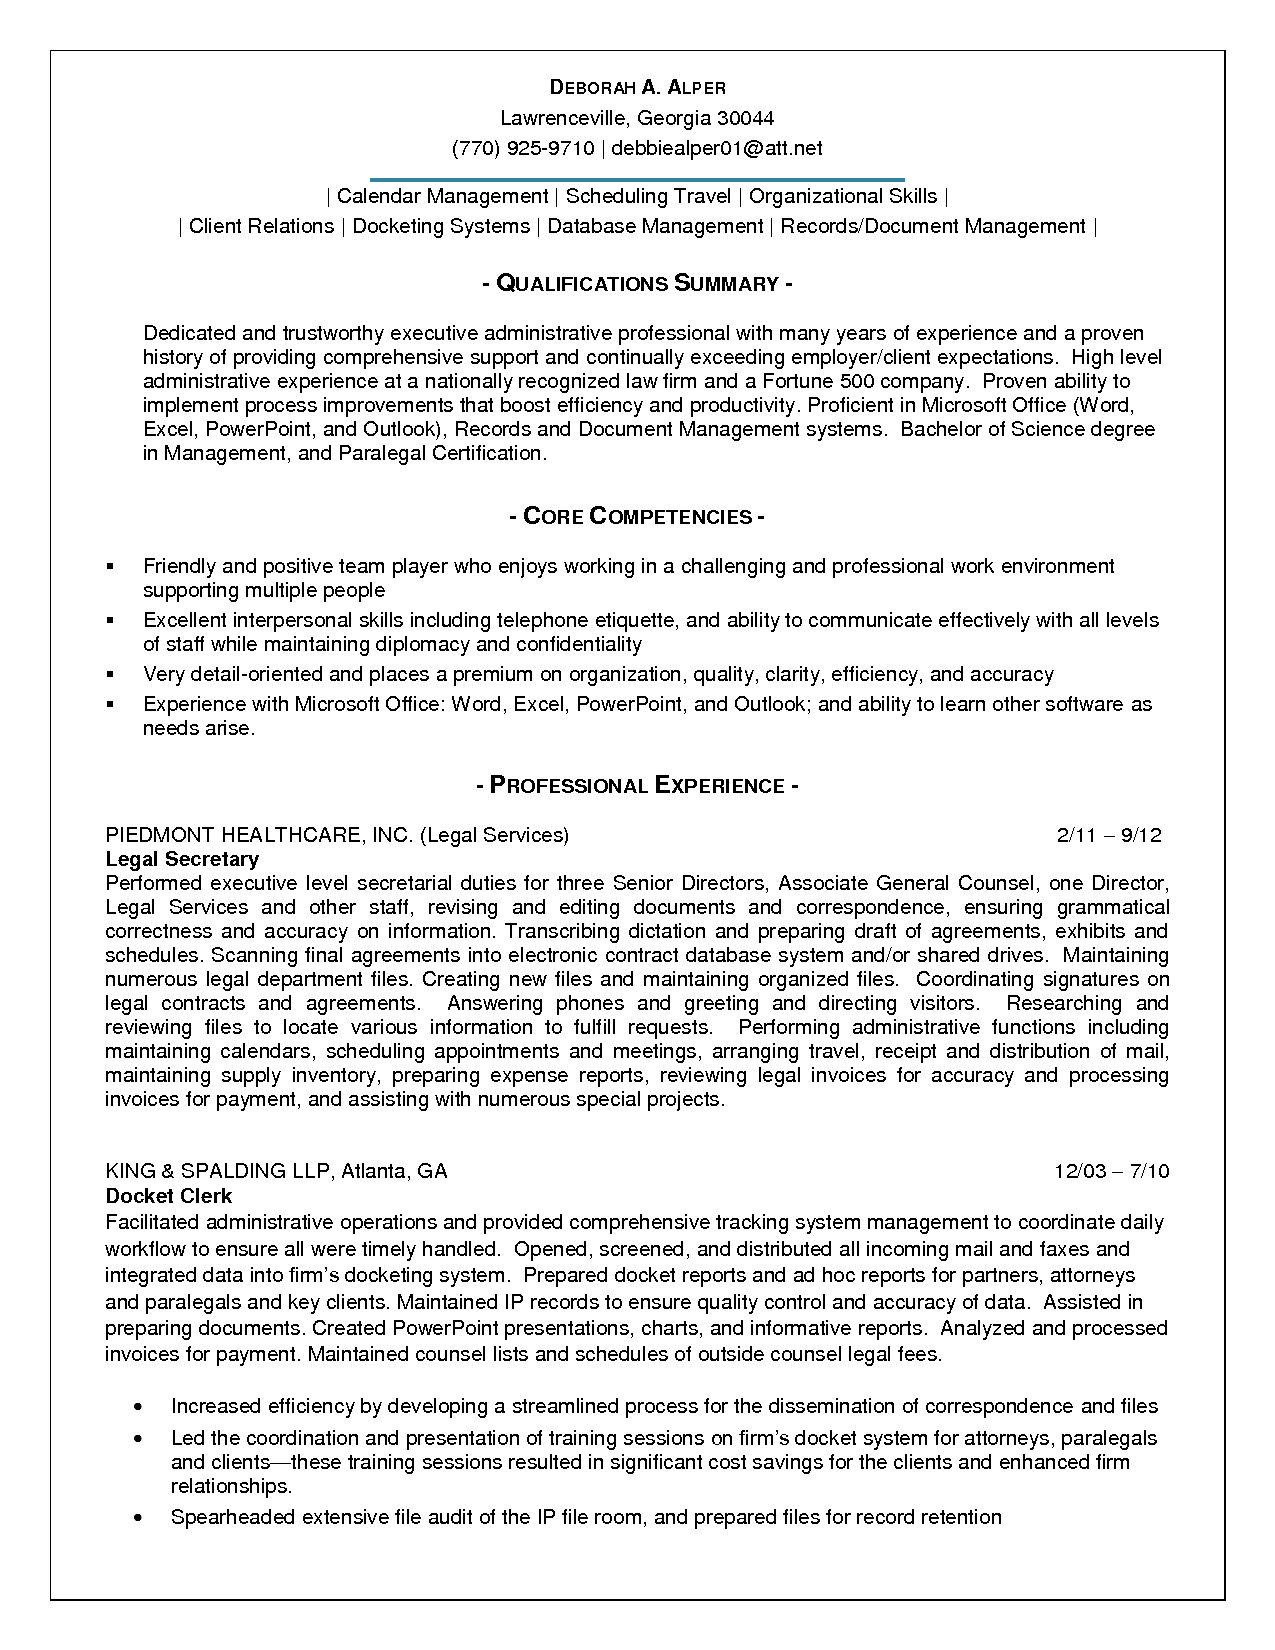 Awesome Summary Qualifications Sample Resume For Administrative Assistant Perfect Intended Administrative Assistant Resume Summary